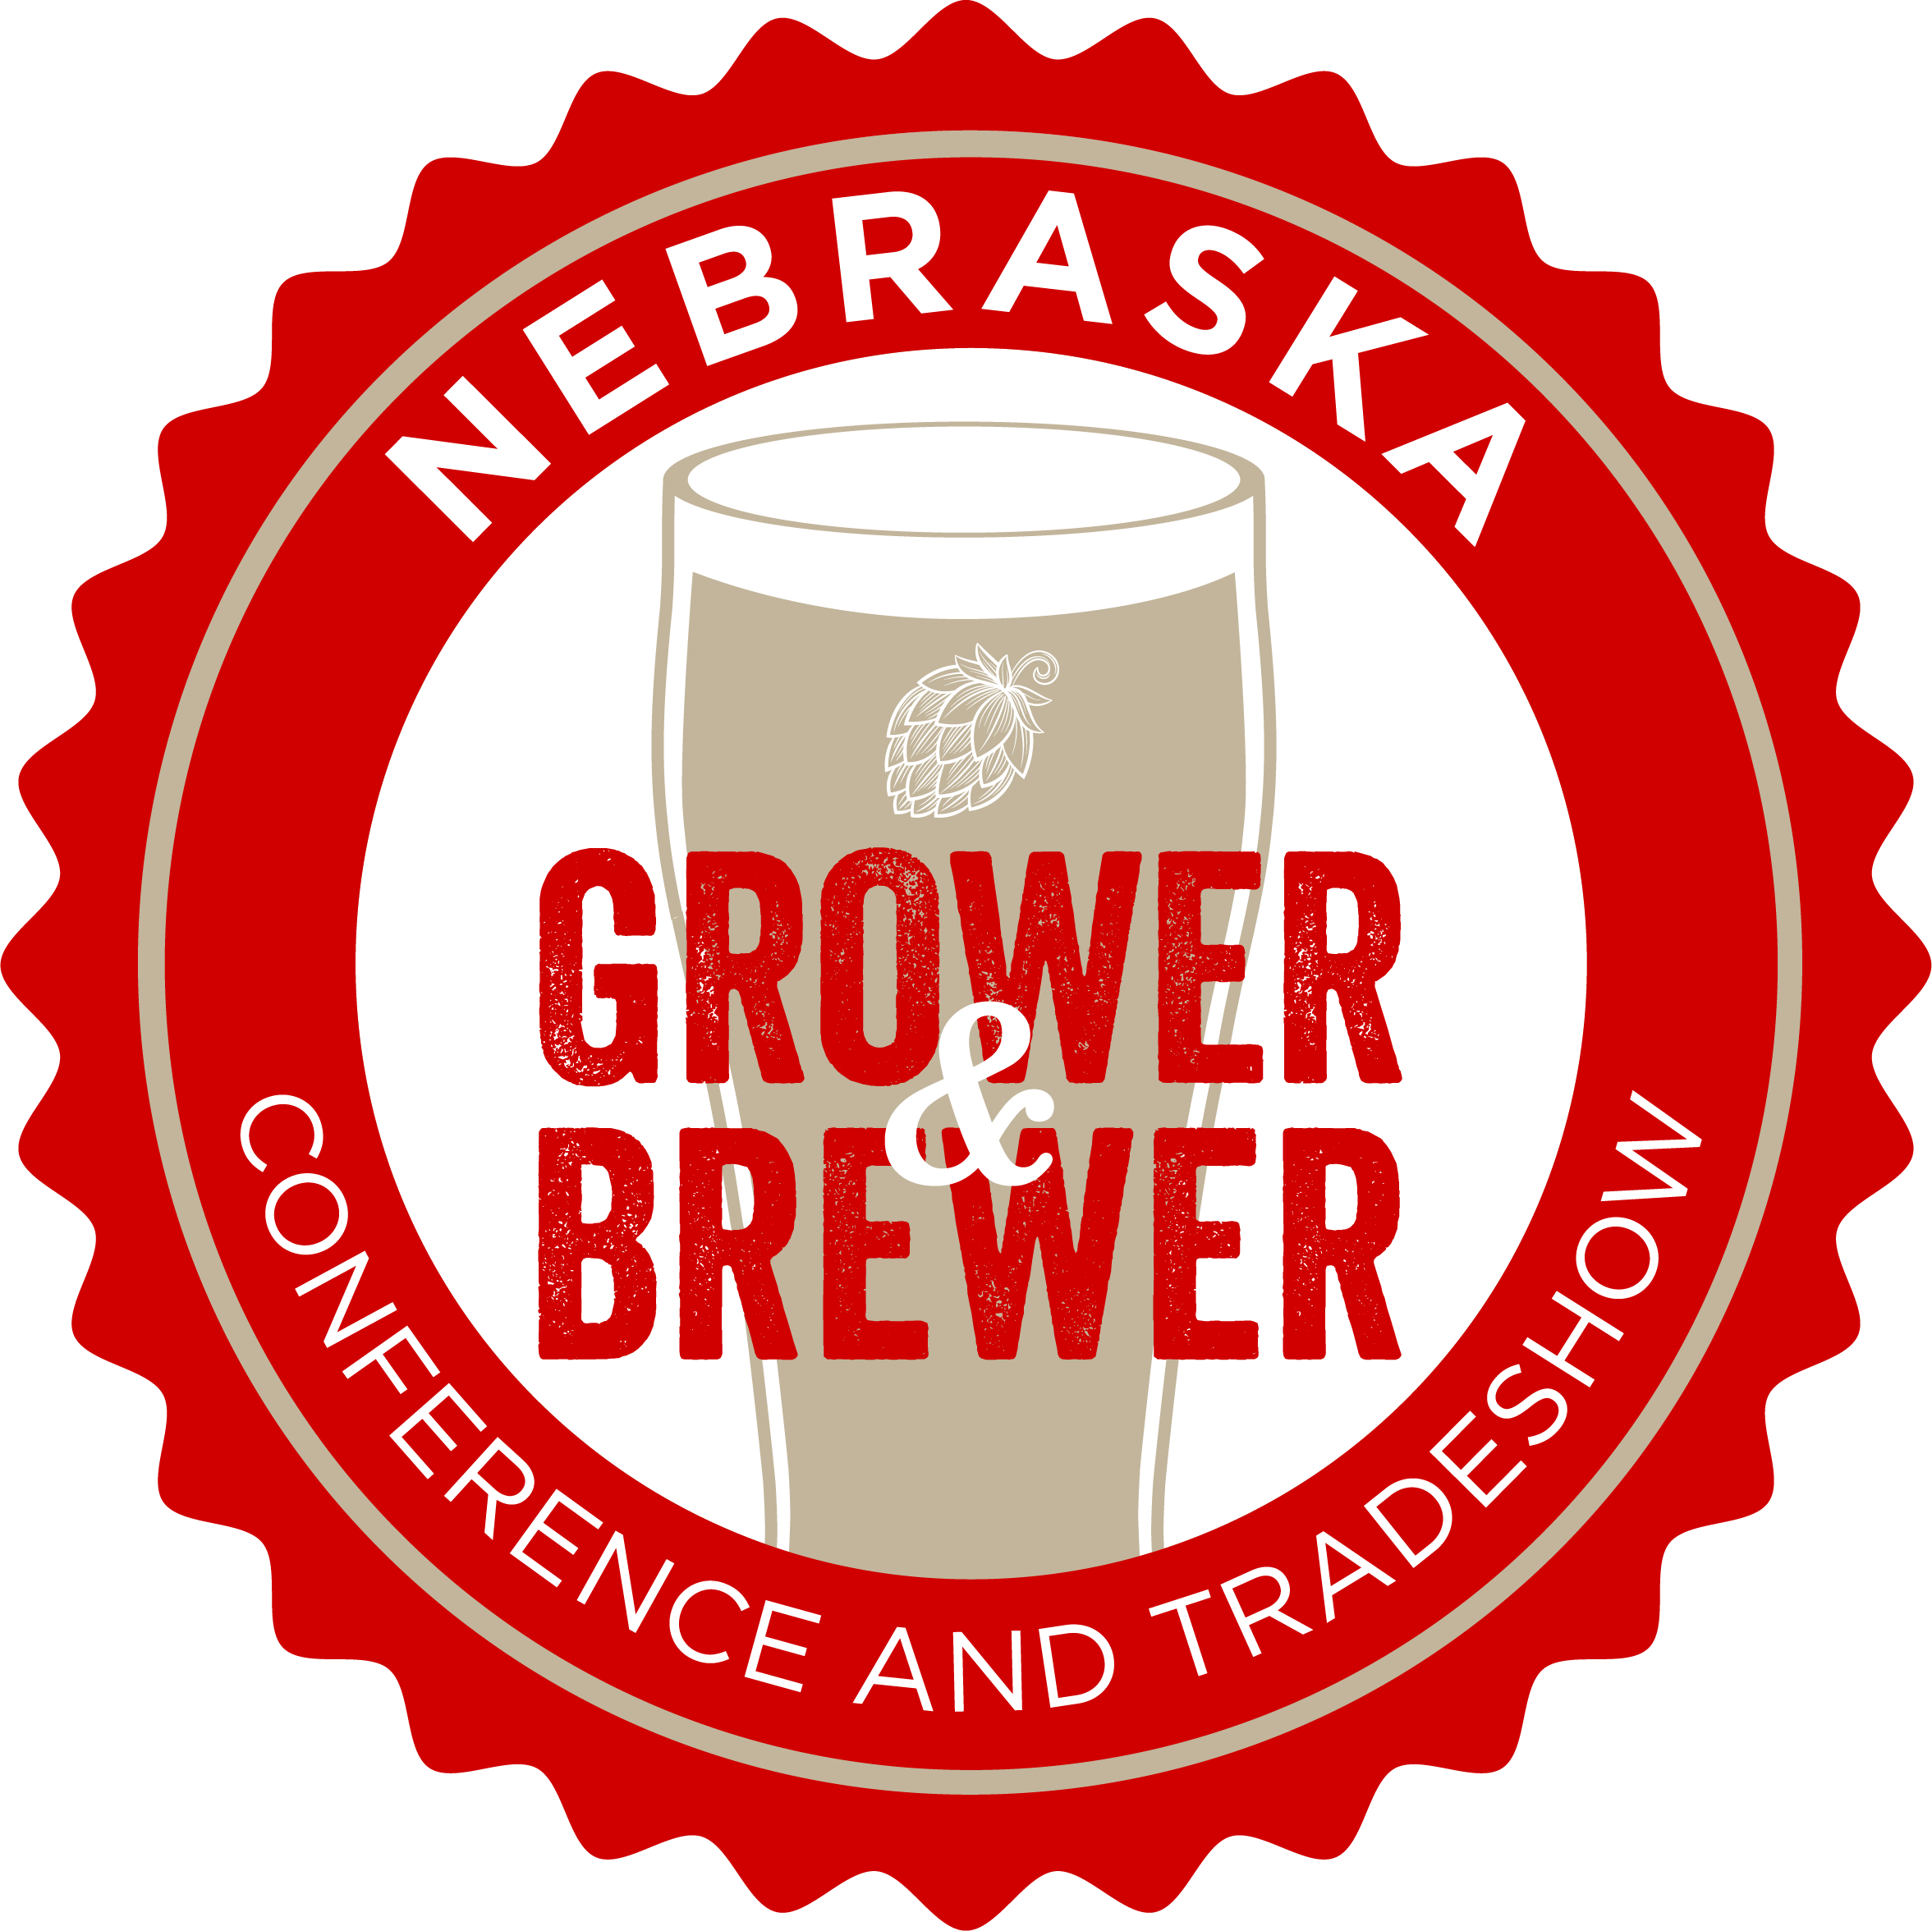 University of Nebraska–Lincoln Extension will host the third annual Nebraska Grower and Brewer Conference and Trade Show Jan. 13-14 in Lincoln.